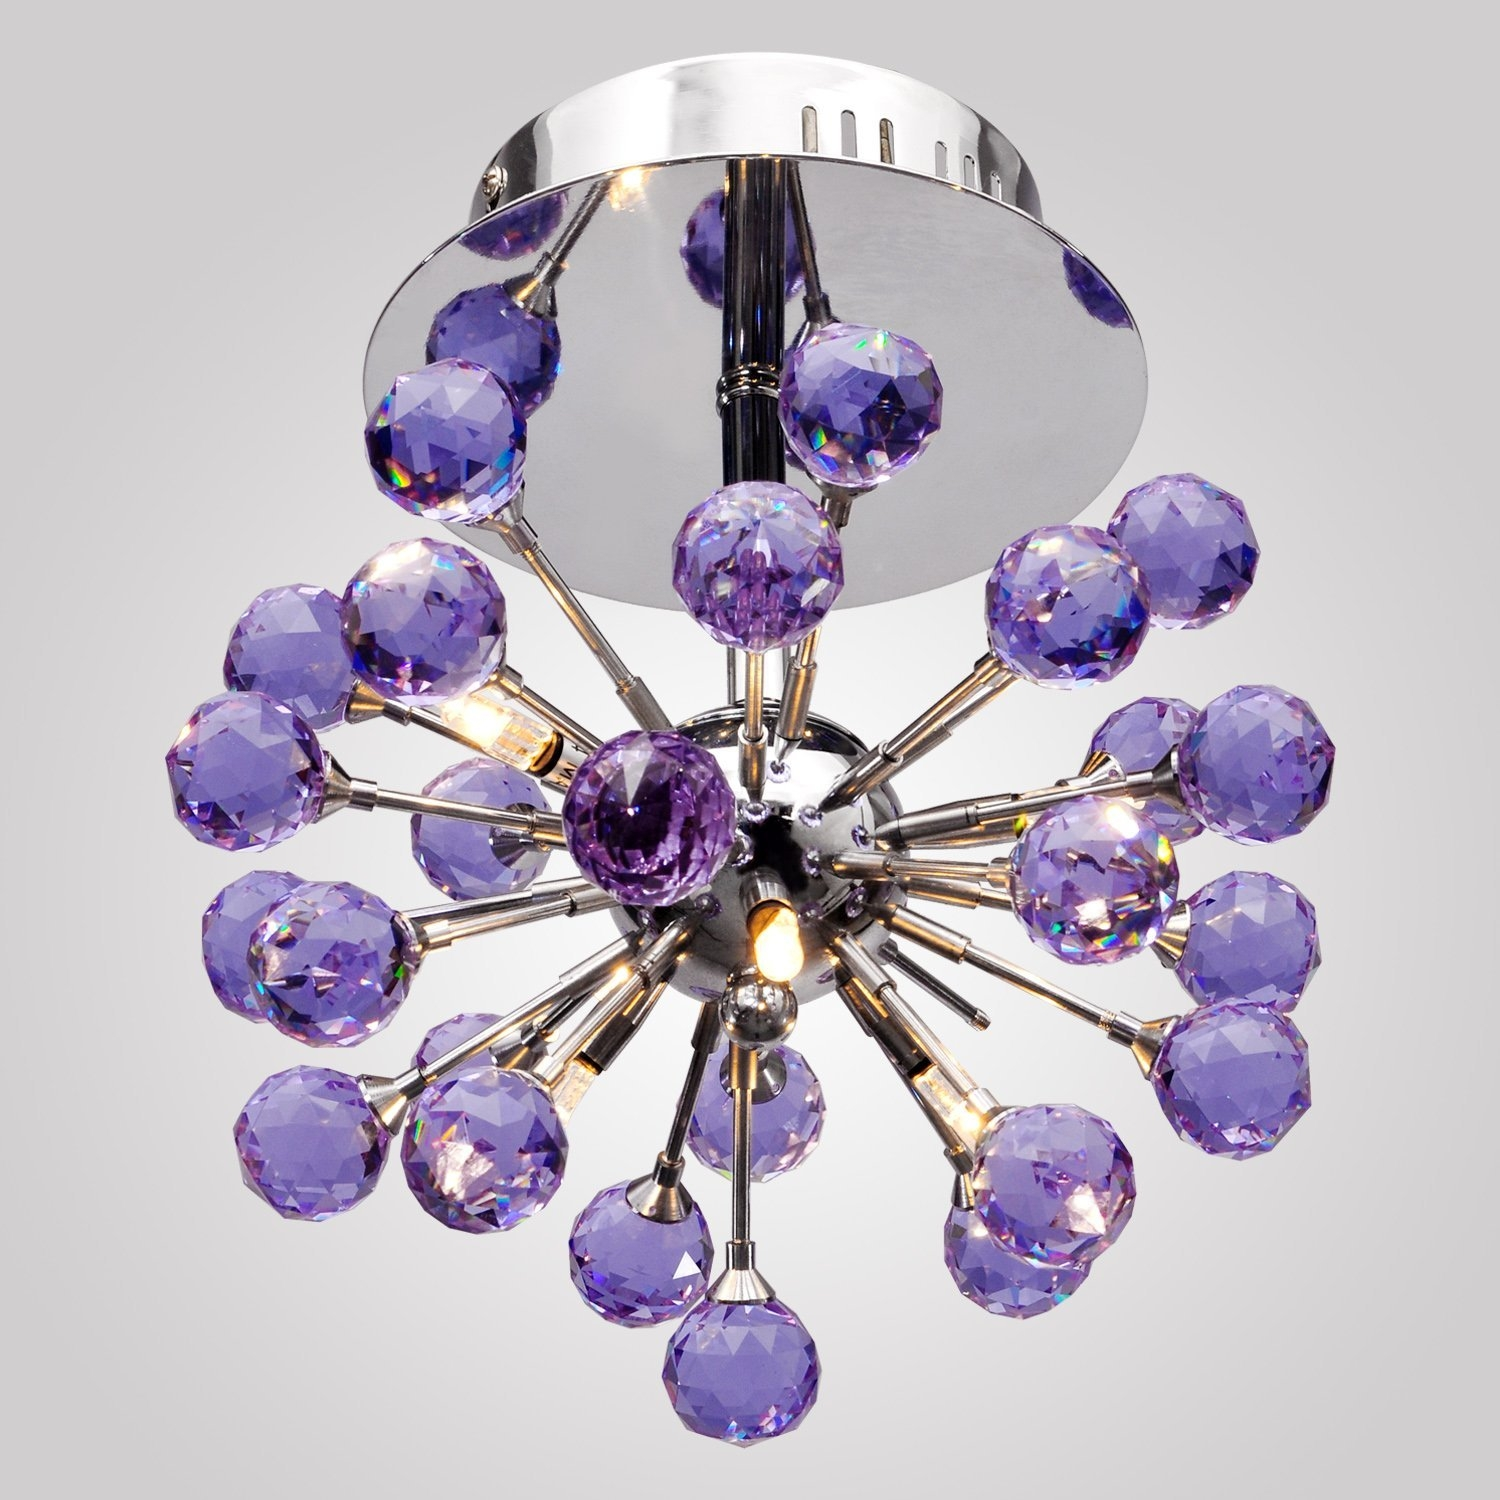 Lightinthebox 6 Light Floral Shape K9 Crystal Ceiling Light Purple With Regard To Purple Crystal Chandelier Lights (Image 17 of 25)